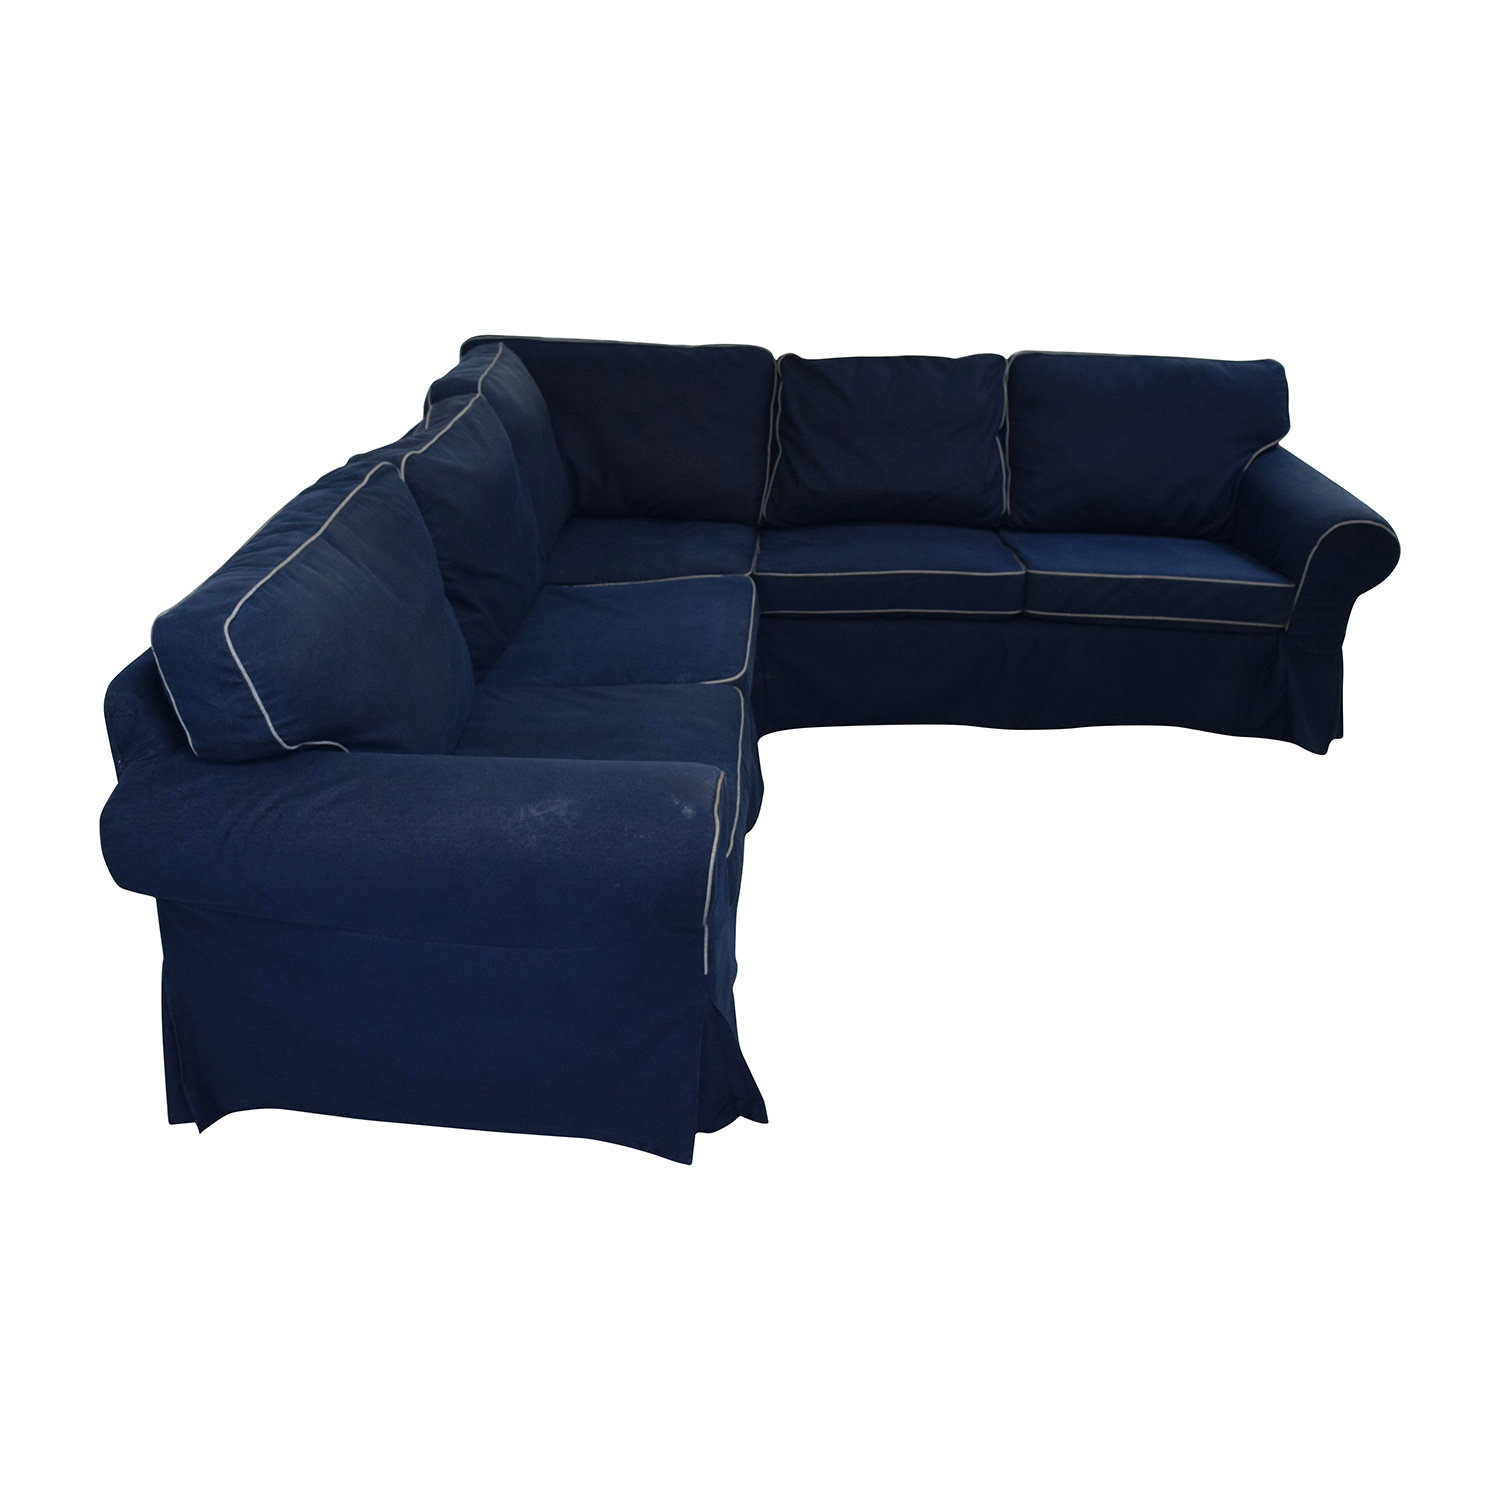 Ikea Ektorp Sectional 43% Off - Ikea Ikea Ektorp Navy Blue Skirted Sectional / Sofas